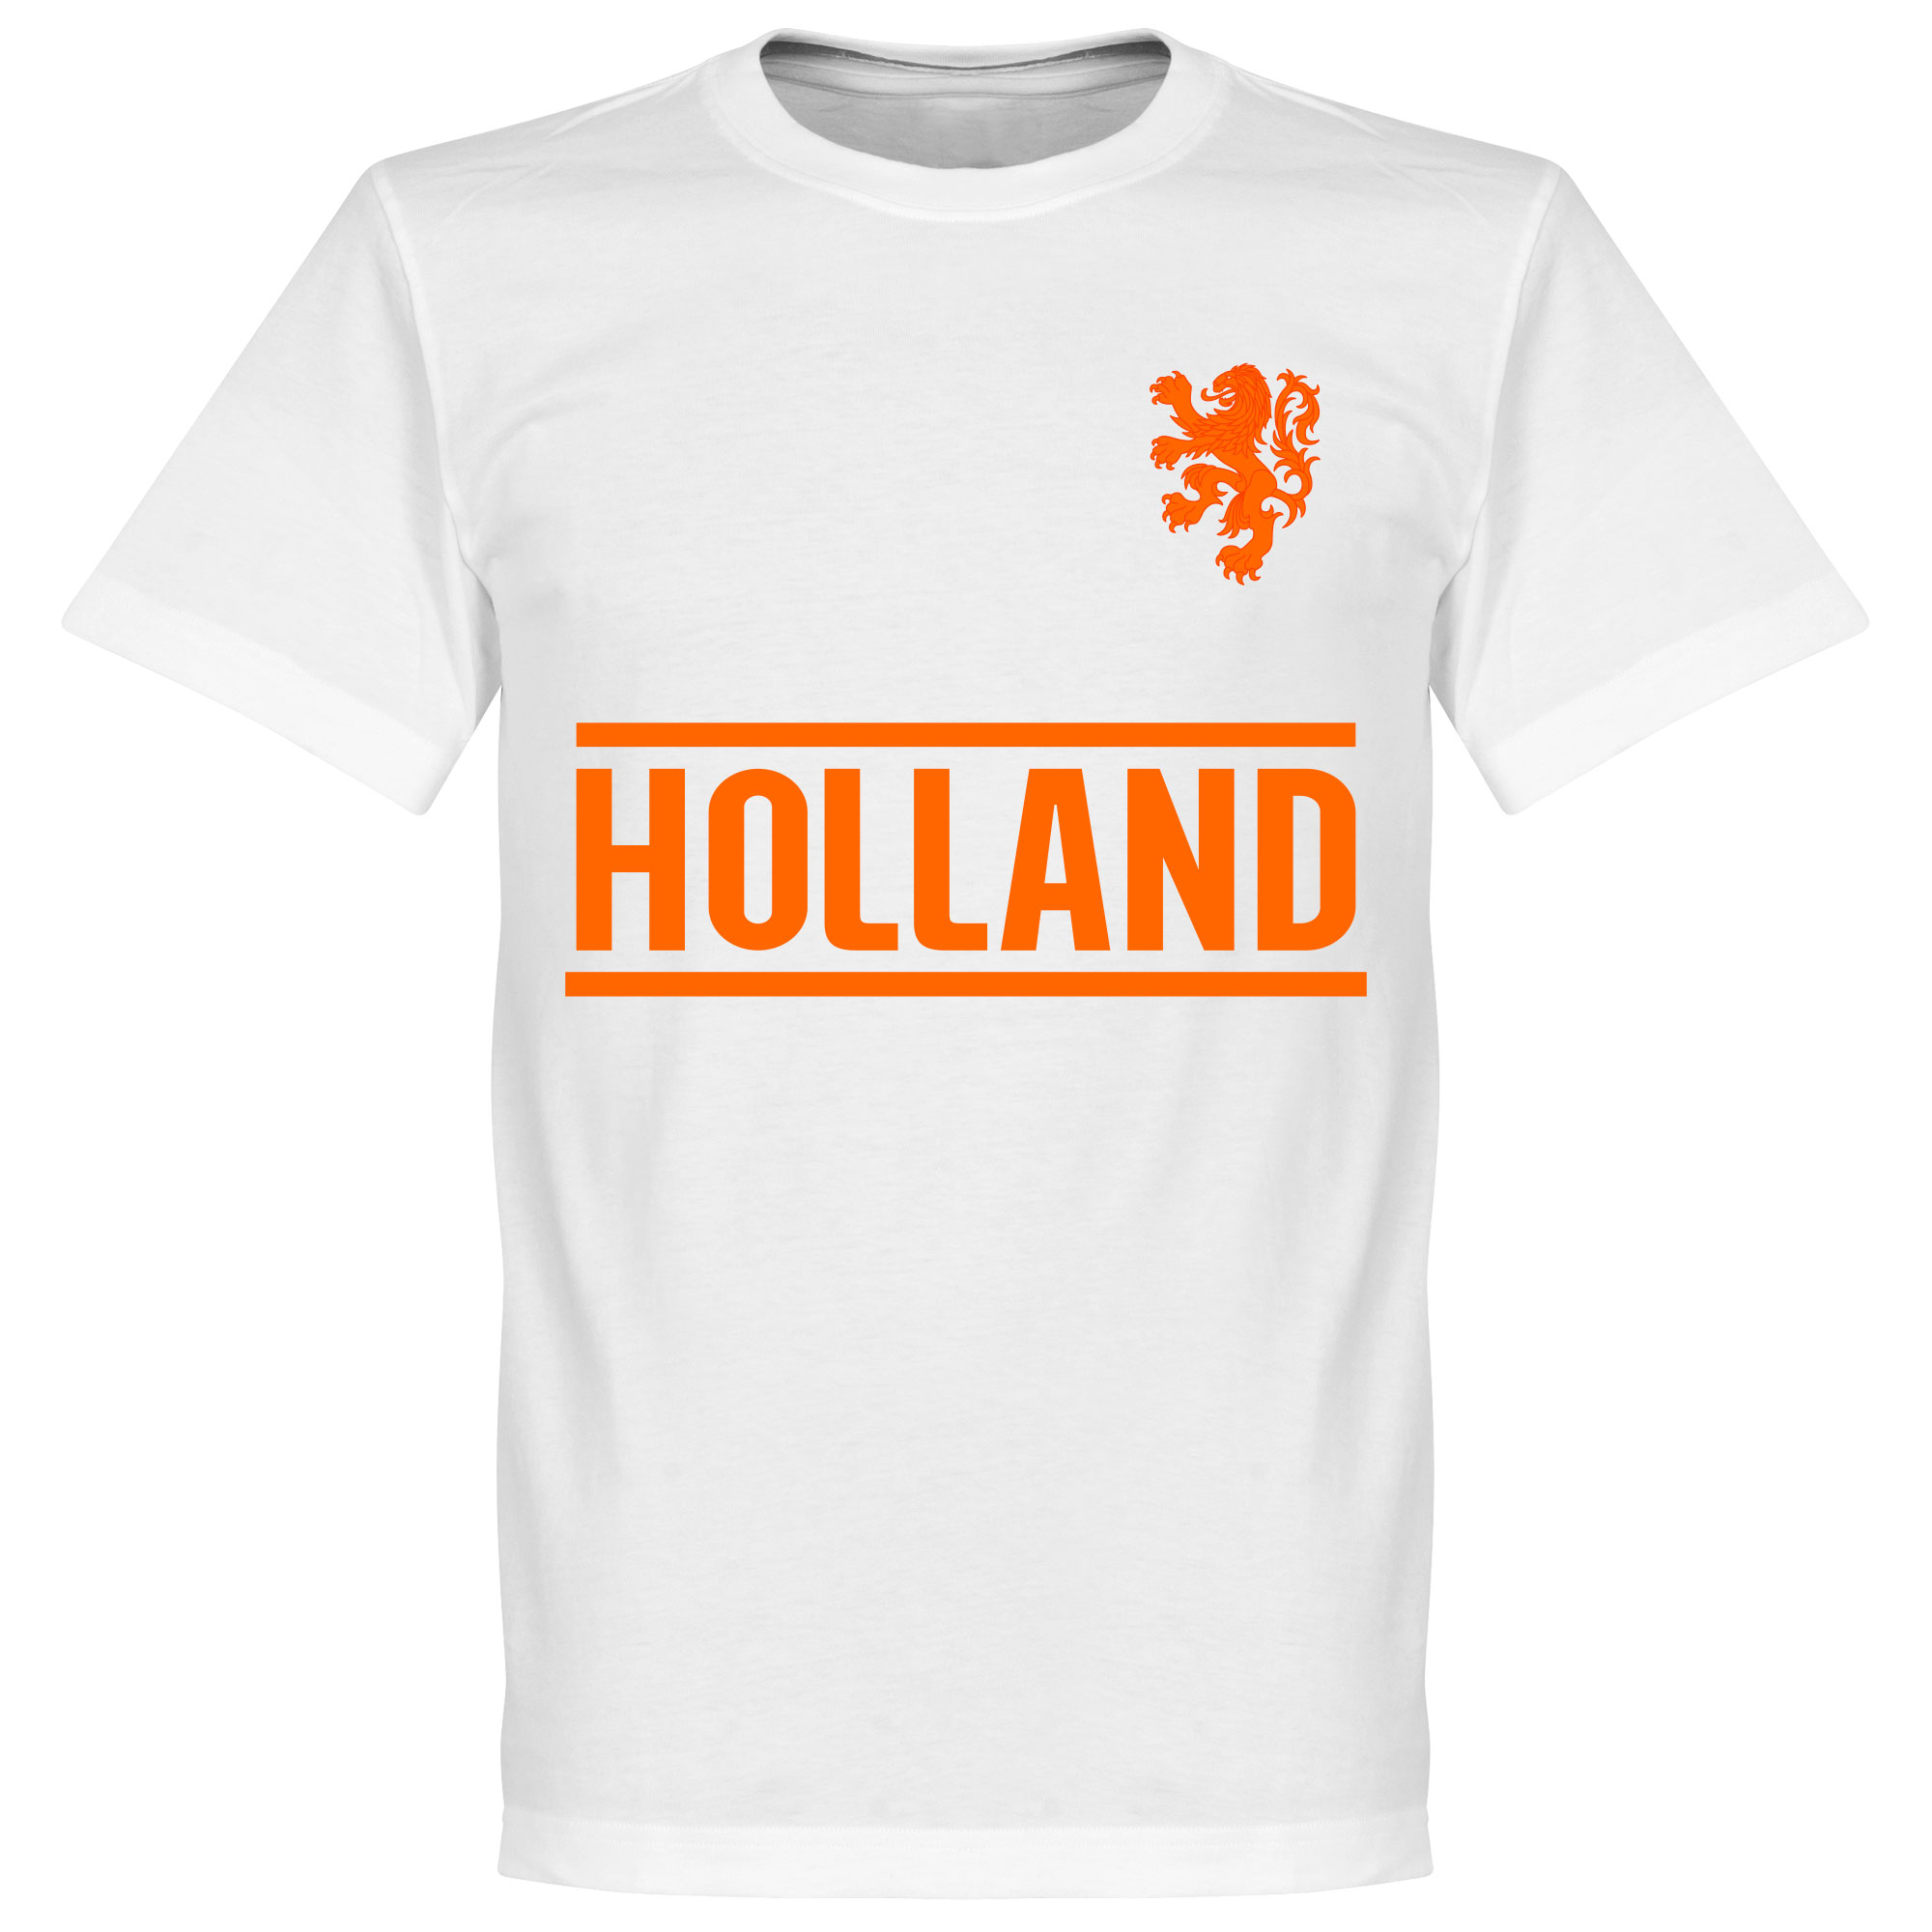 Holland Team Tee - White - S